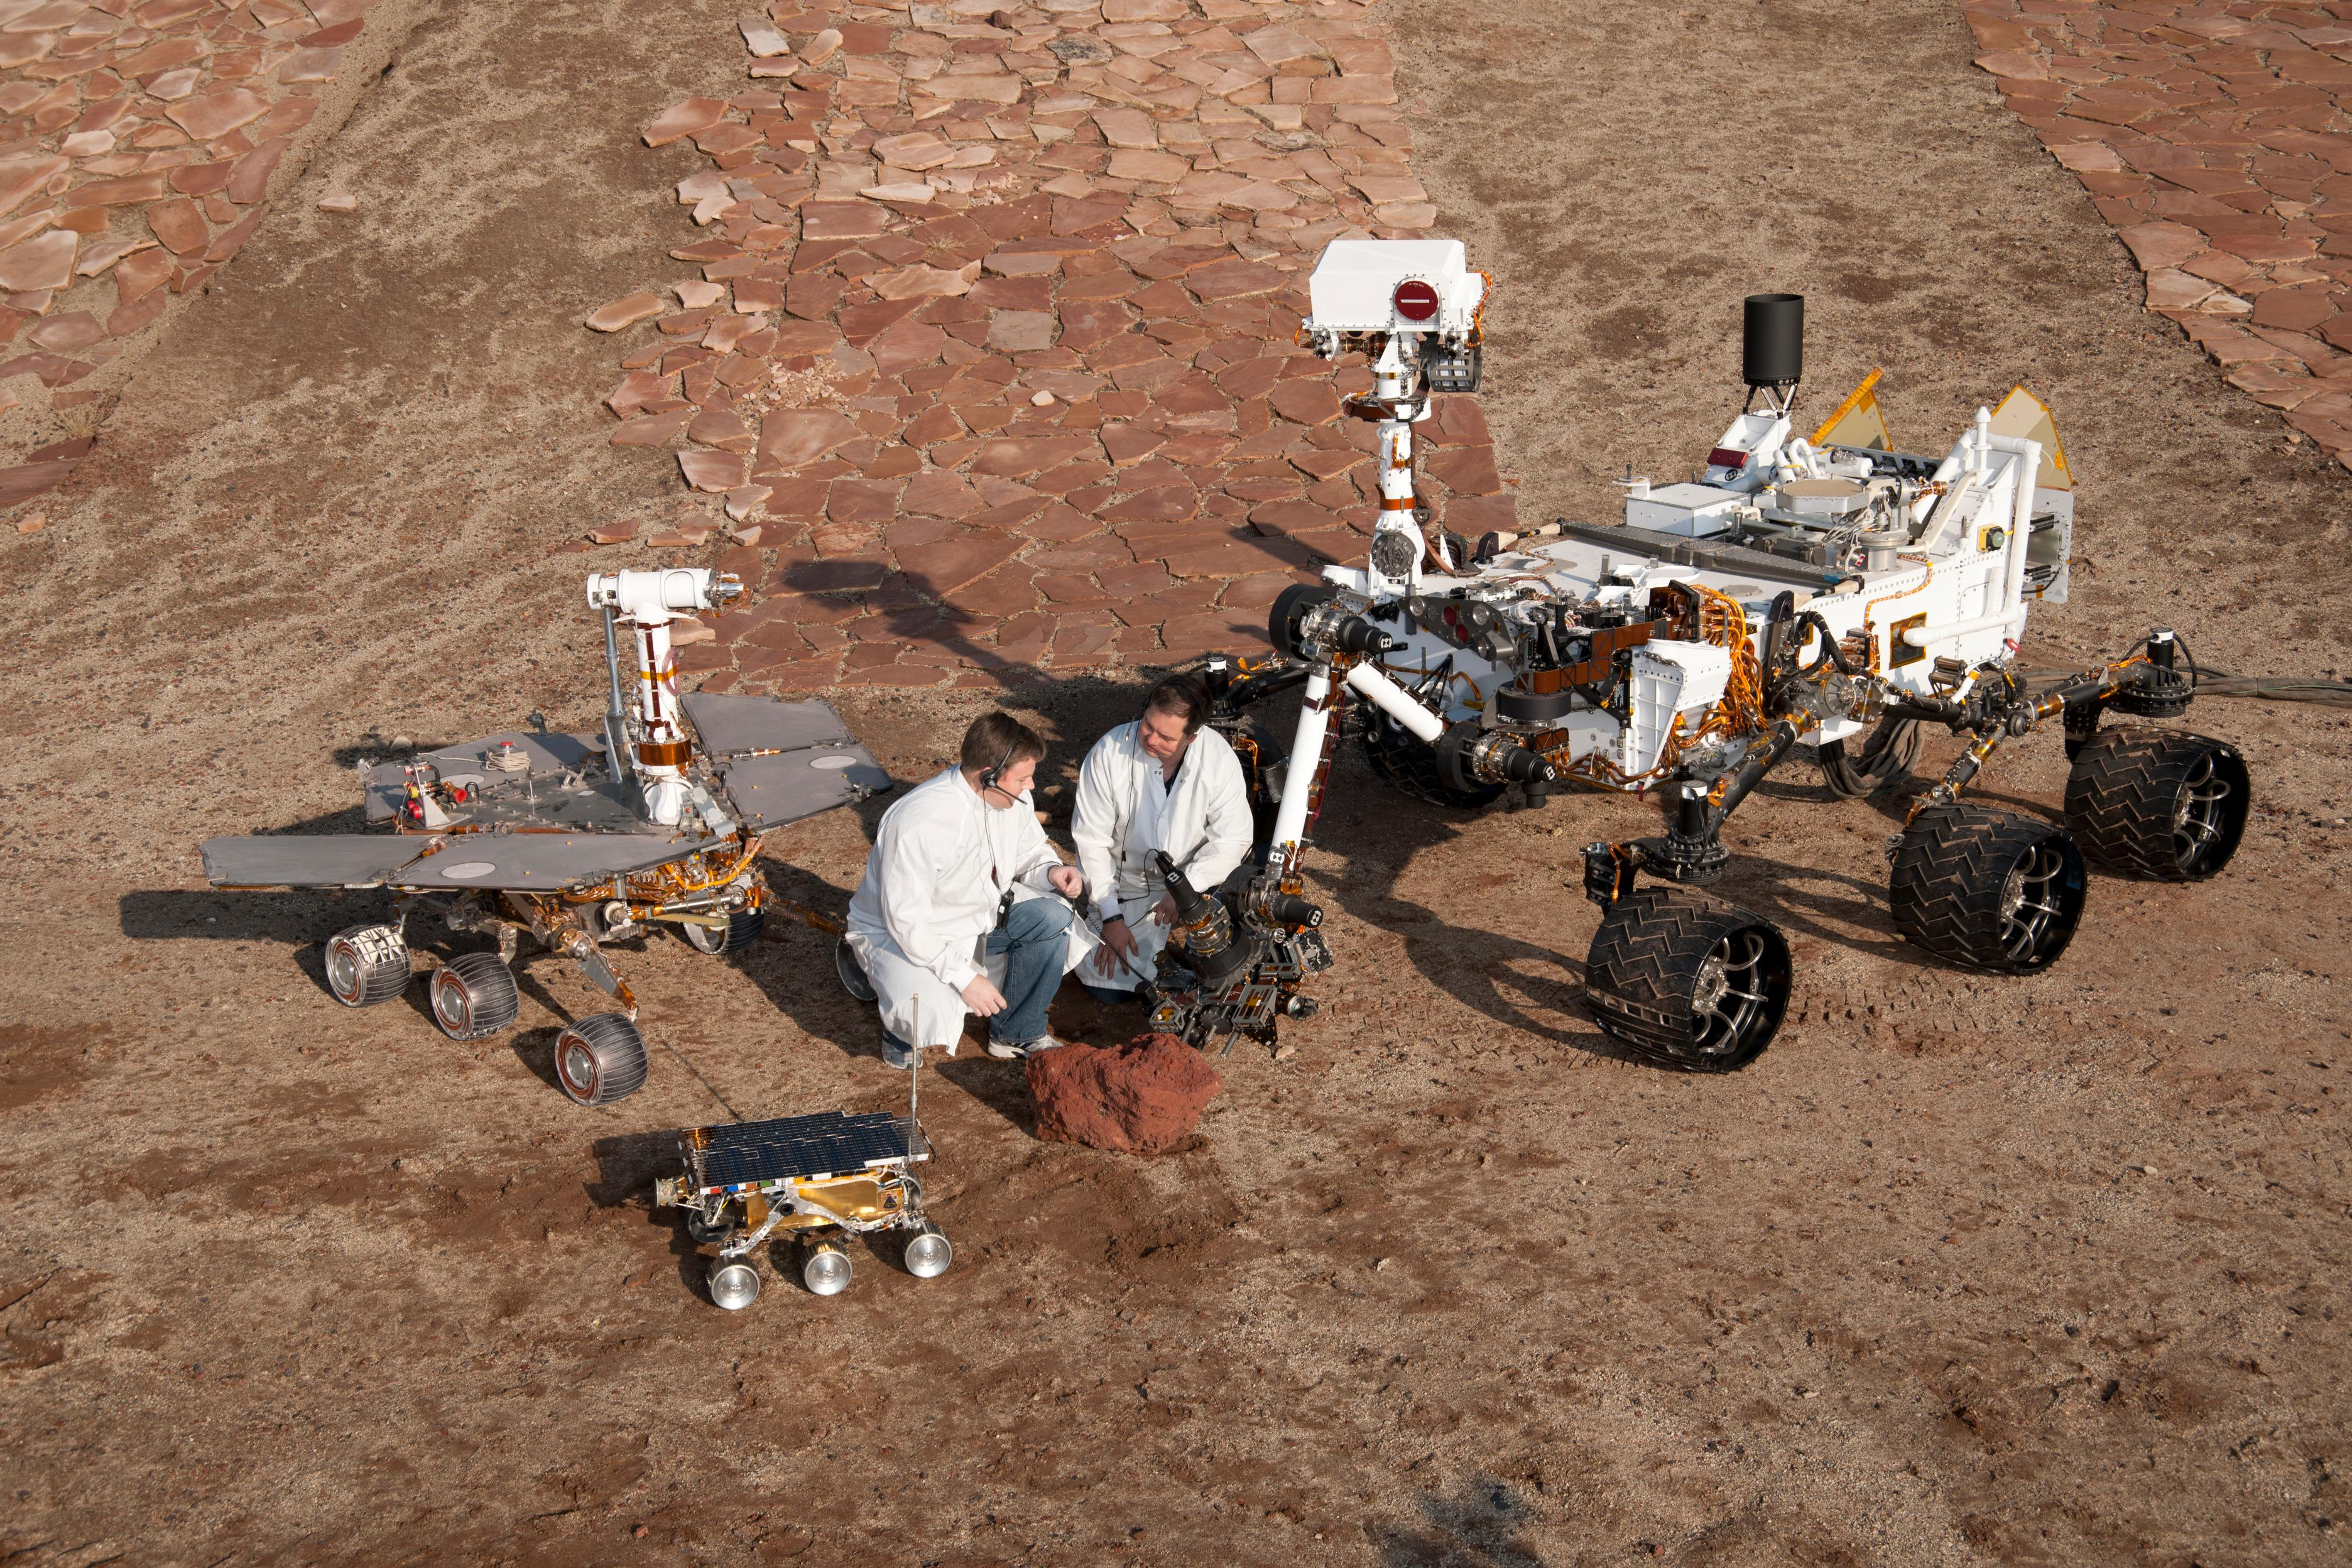 Two spacecraft engineers join a grouping of vehicles providing a comparison of three generations of Mars rovers developed at NASA's Jet Propulsion Laboratory, Pasadena, Calif. The setting is JPL's Mars Yard testing area.